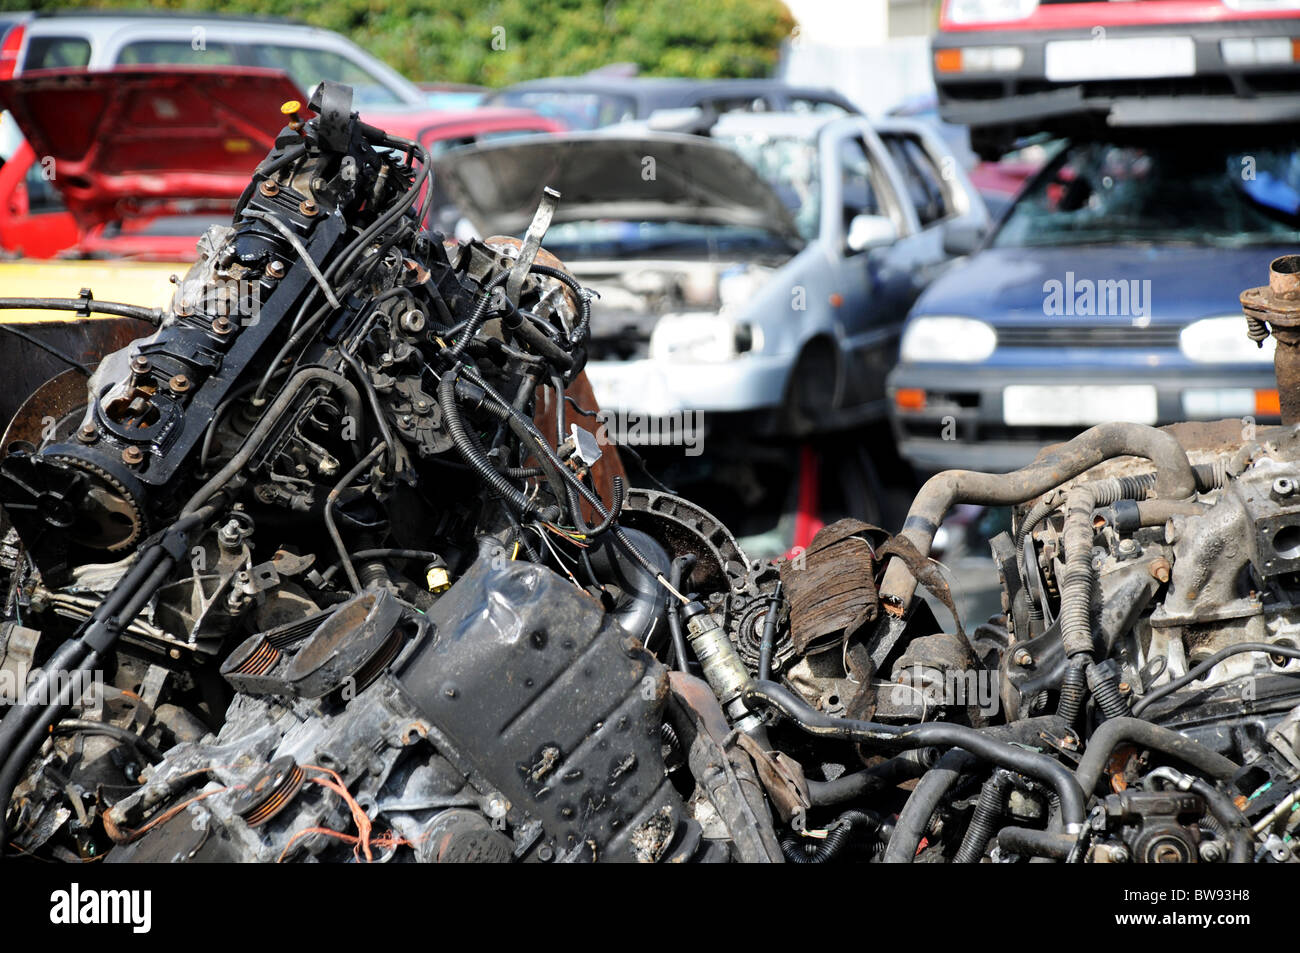 How to scrap car with no log book - A Pile Of Scrap Car Parts In Skip With Piles Of Scrap Cars Behind Stock